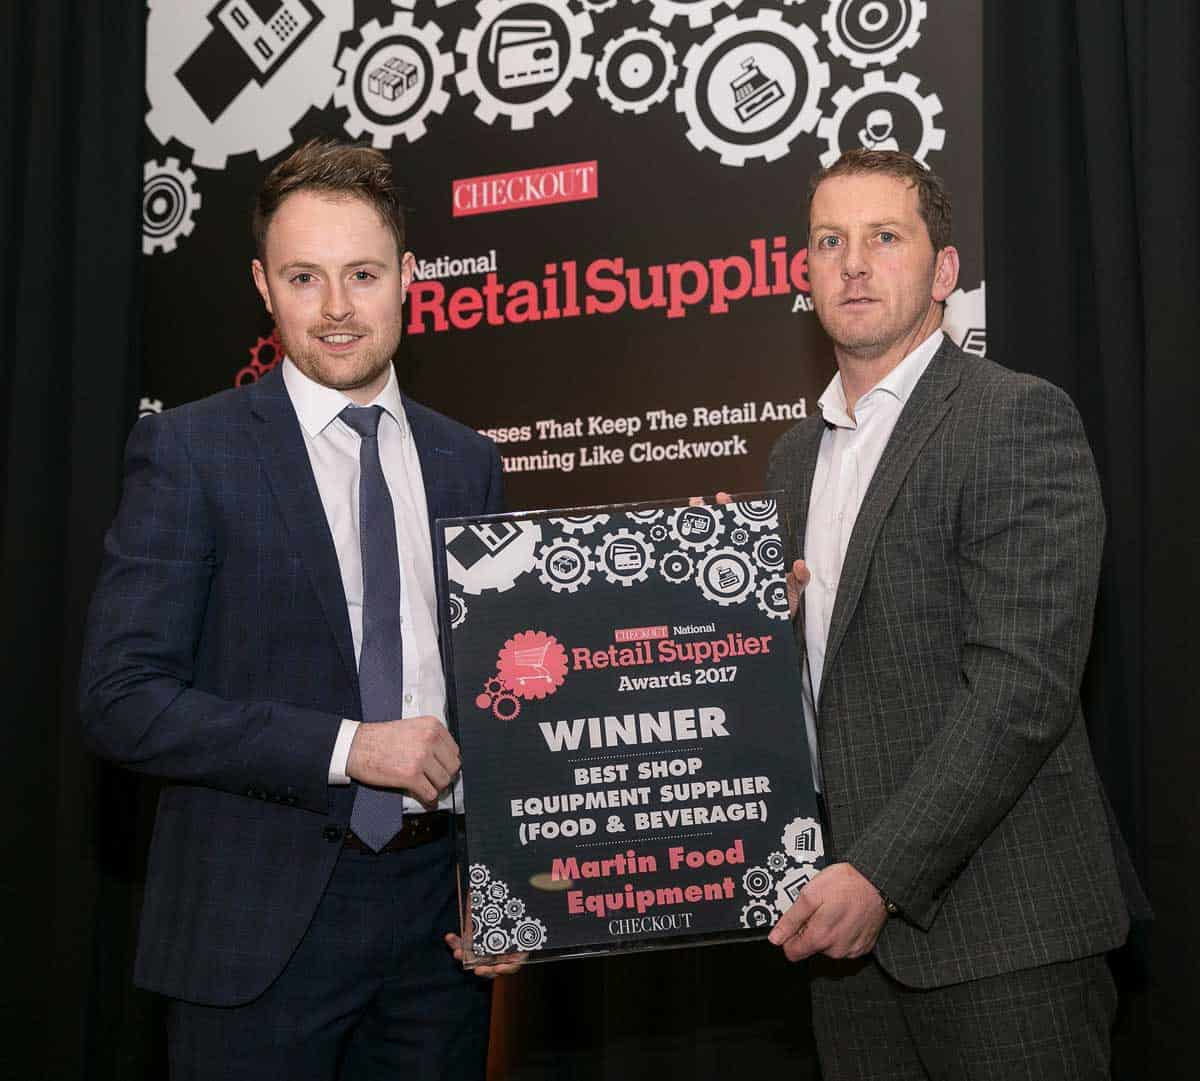 Martin Food Equipment Wins Best Shop Equipment Supplier